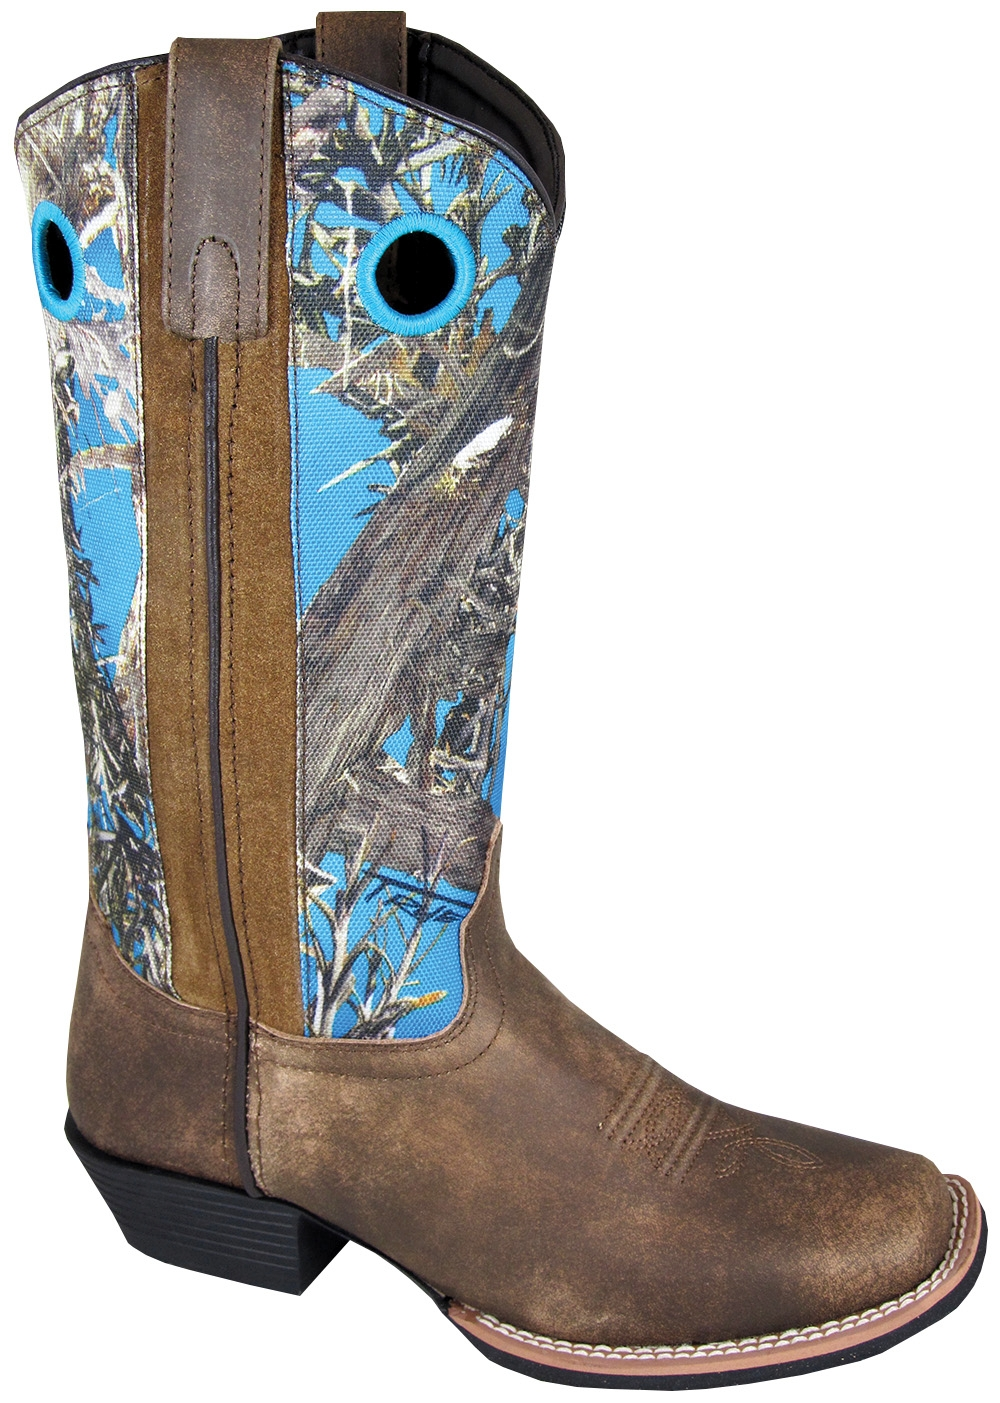 Womens Square Toe True Timber blue Camo Cowboy Boots